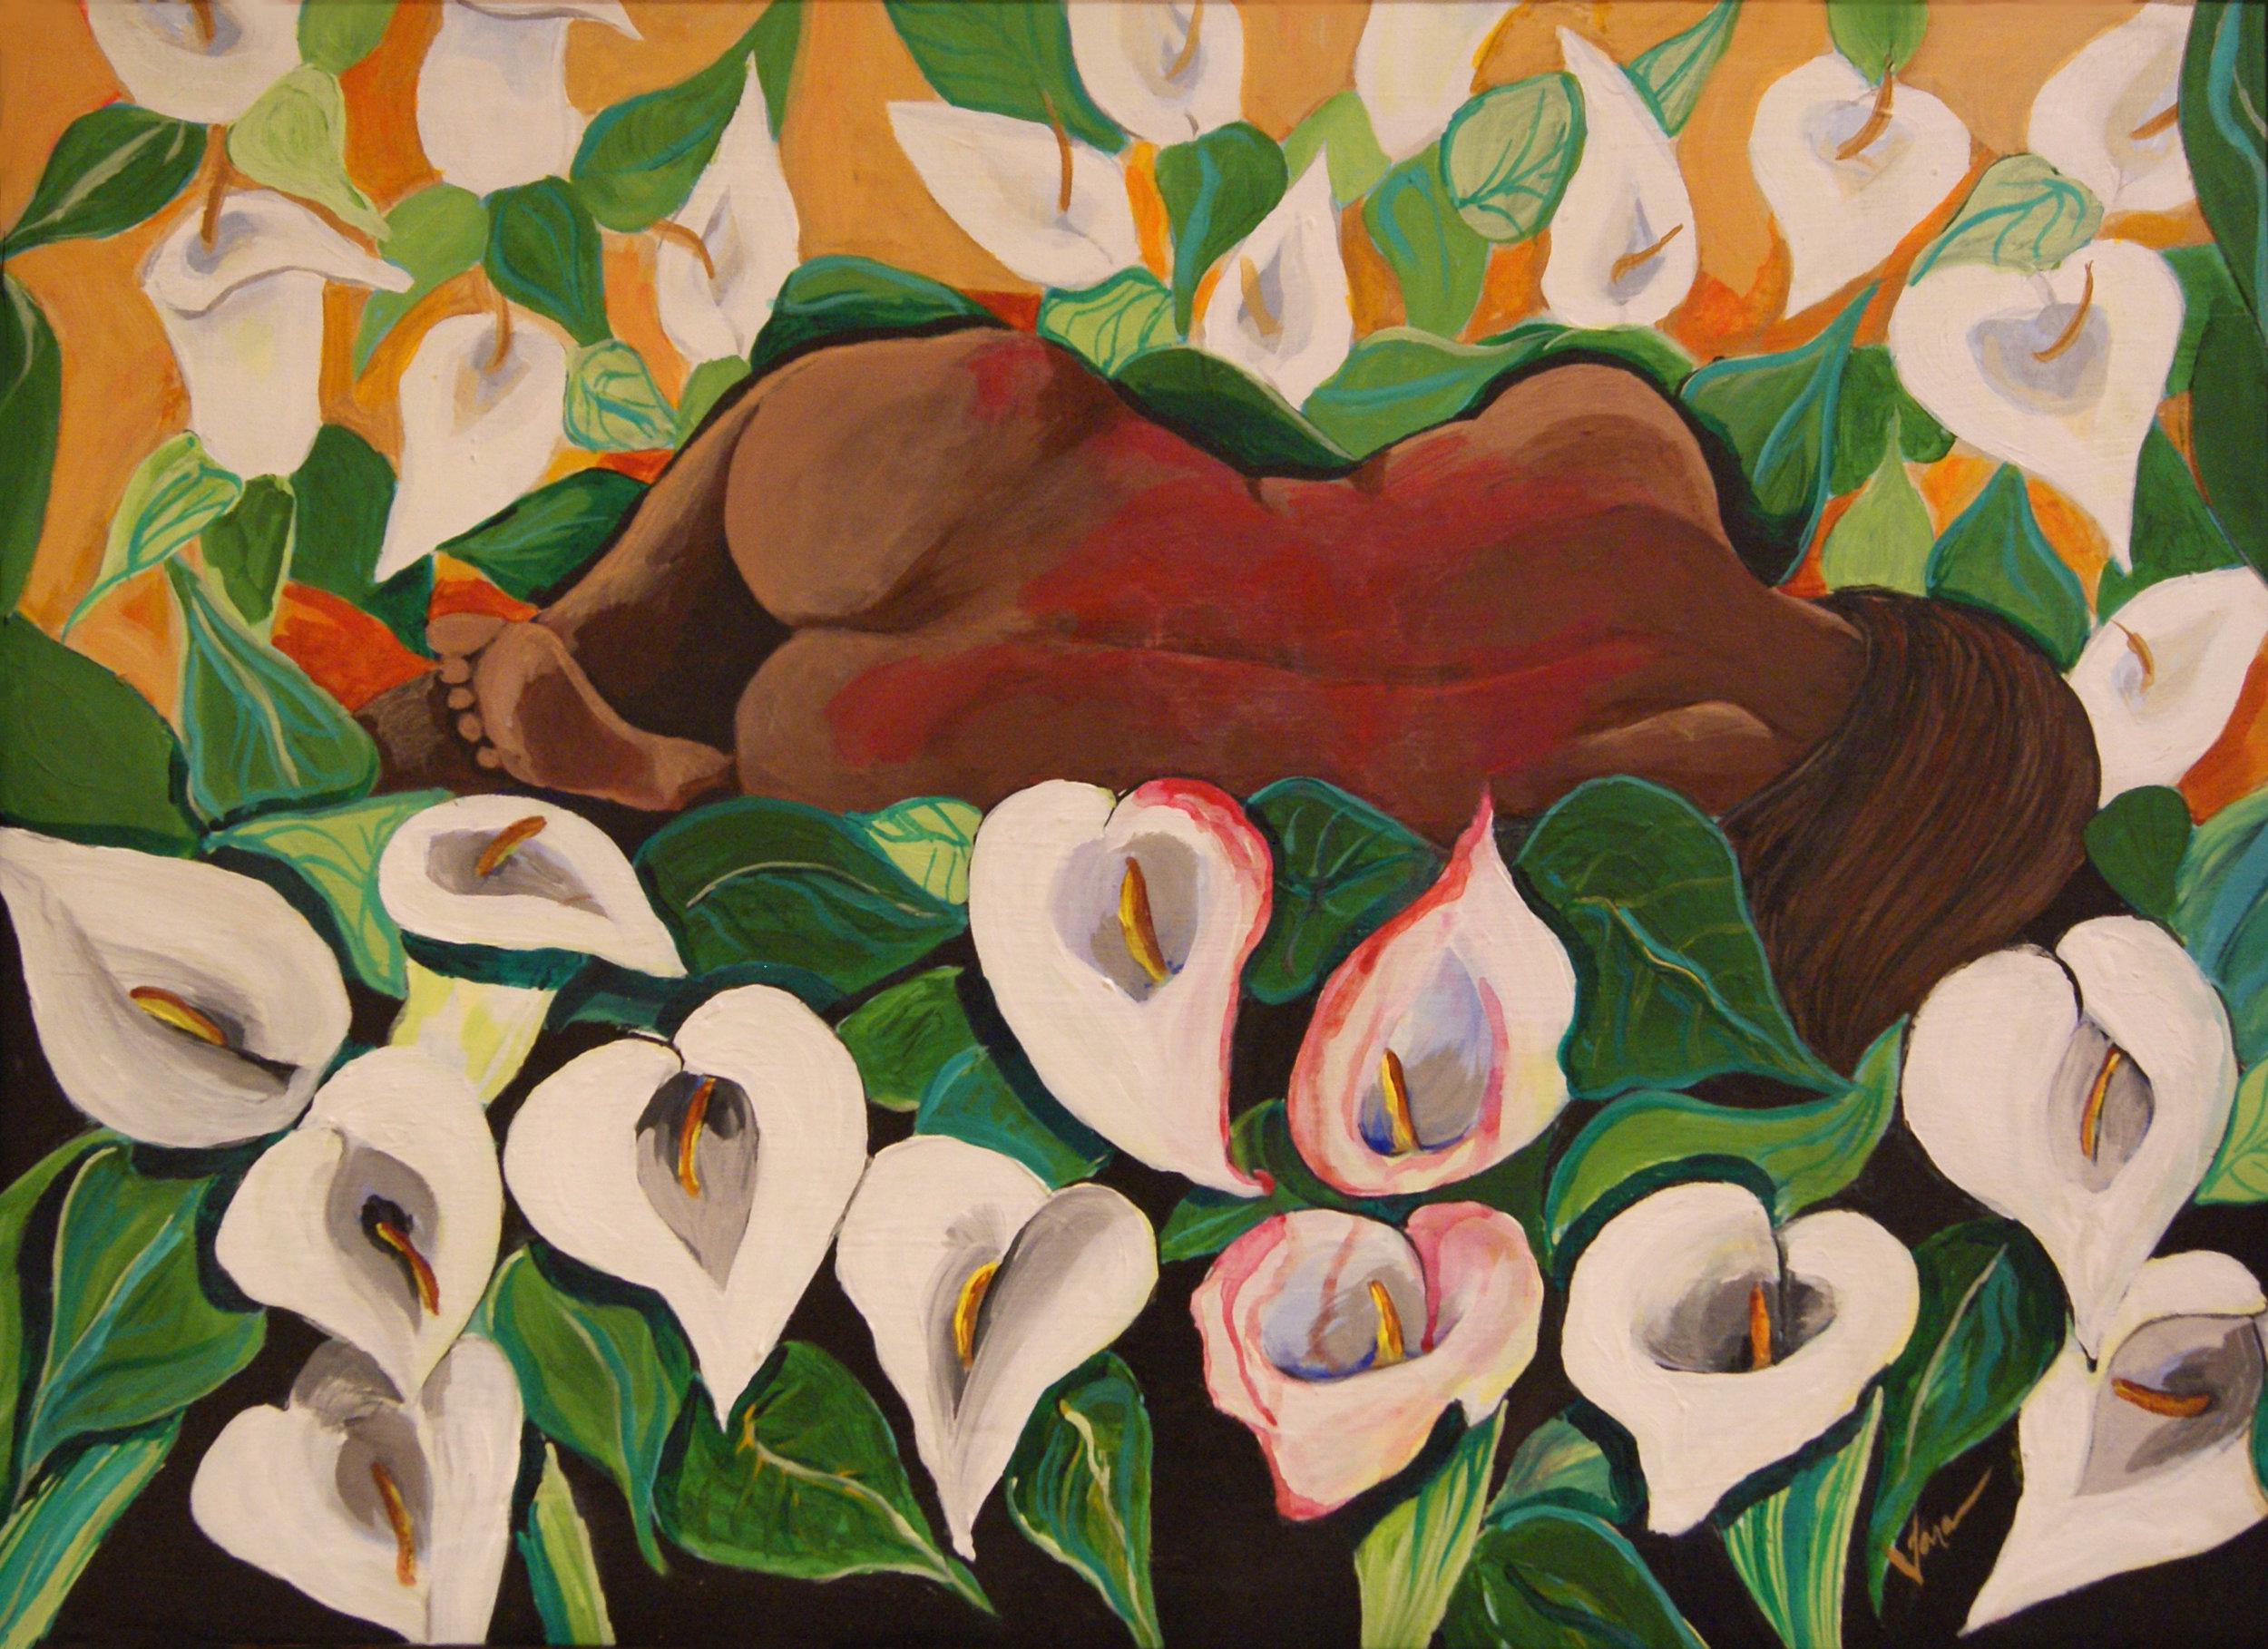 GalleryAWA-Tara Boirard- Poisoned Flower.jpg